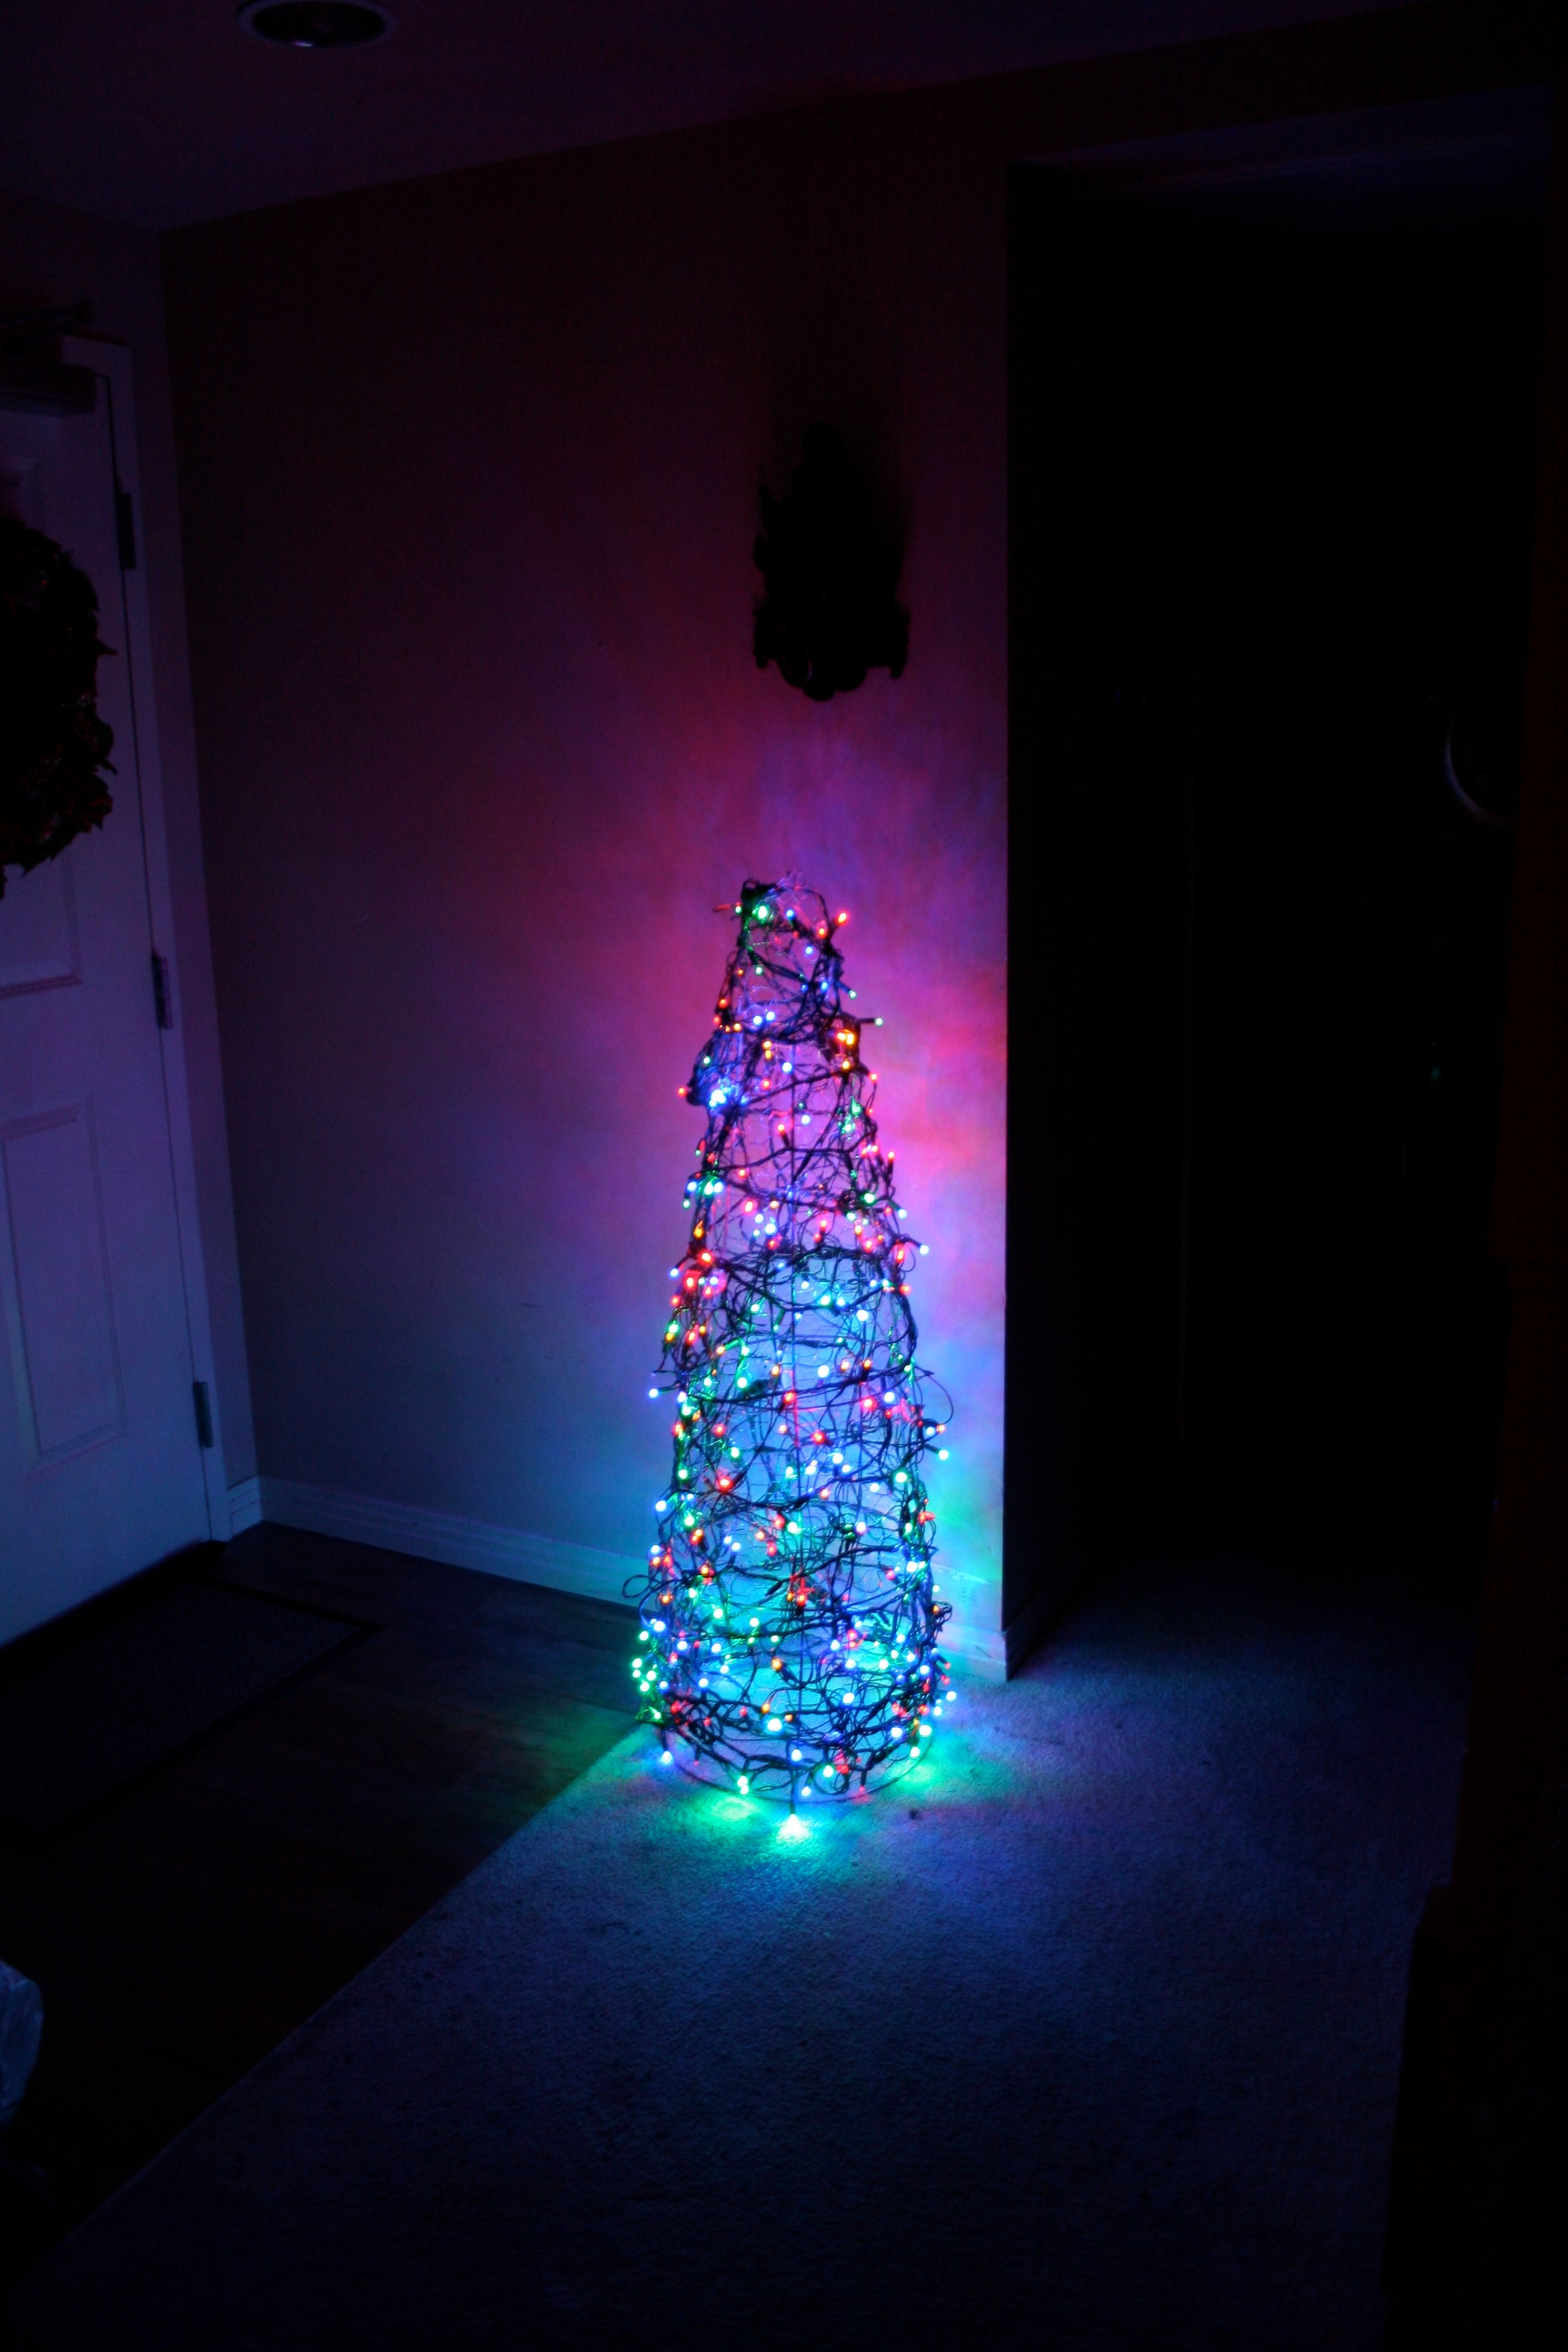 Chicken Wire Christmas Tree: 3 Steps (with Pictures)